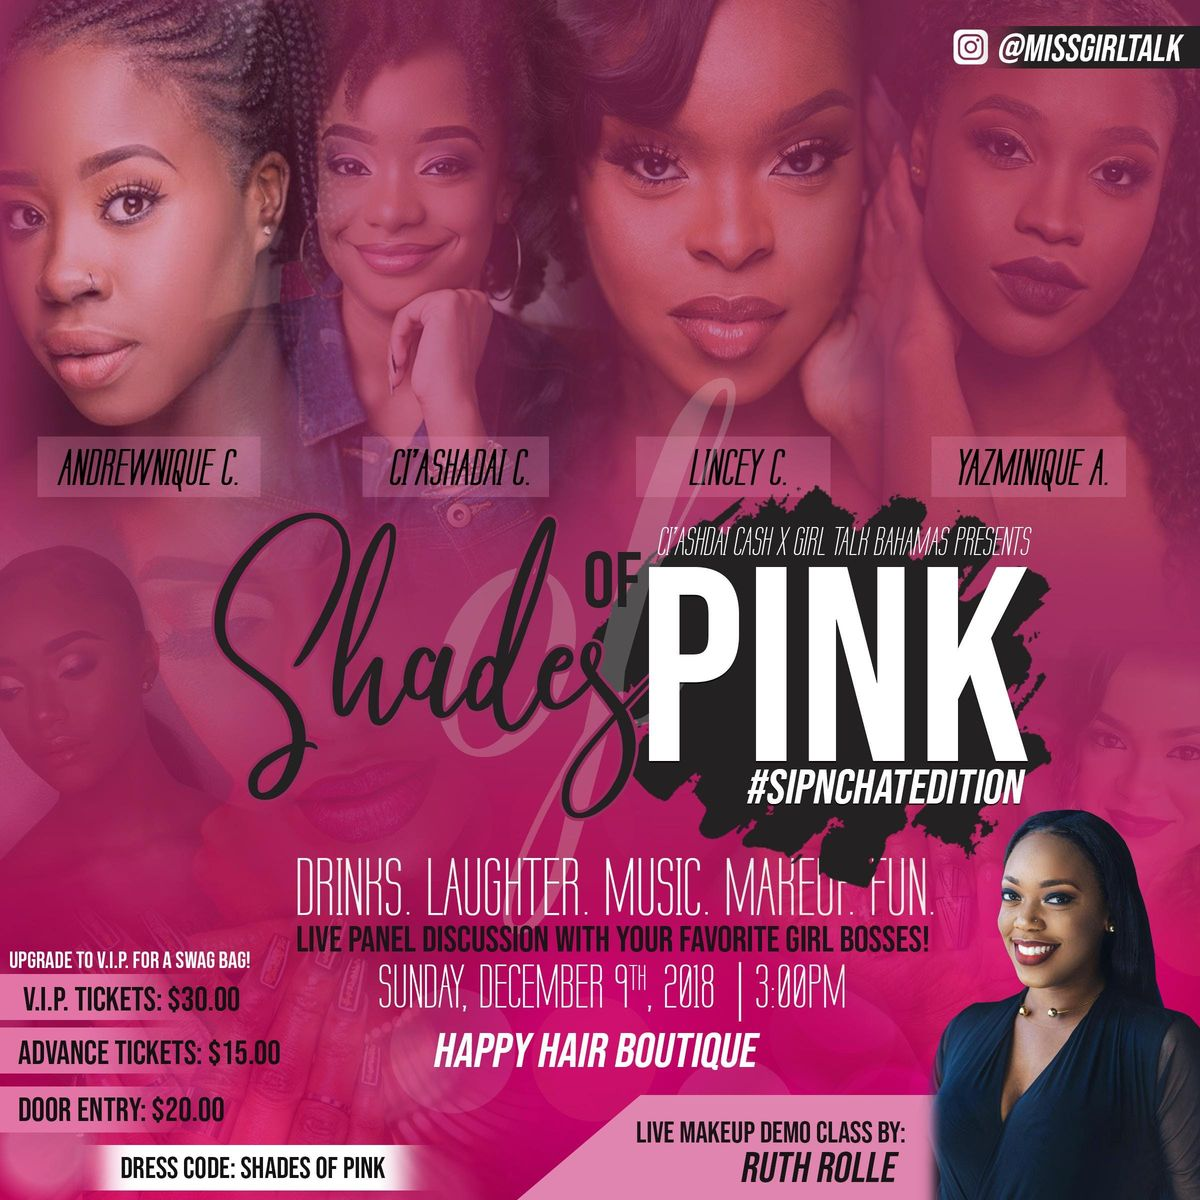 Shades of Pink #SipChatEdition